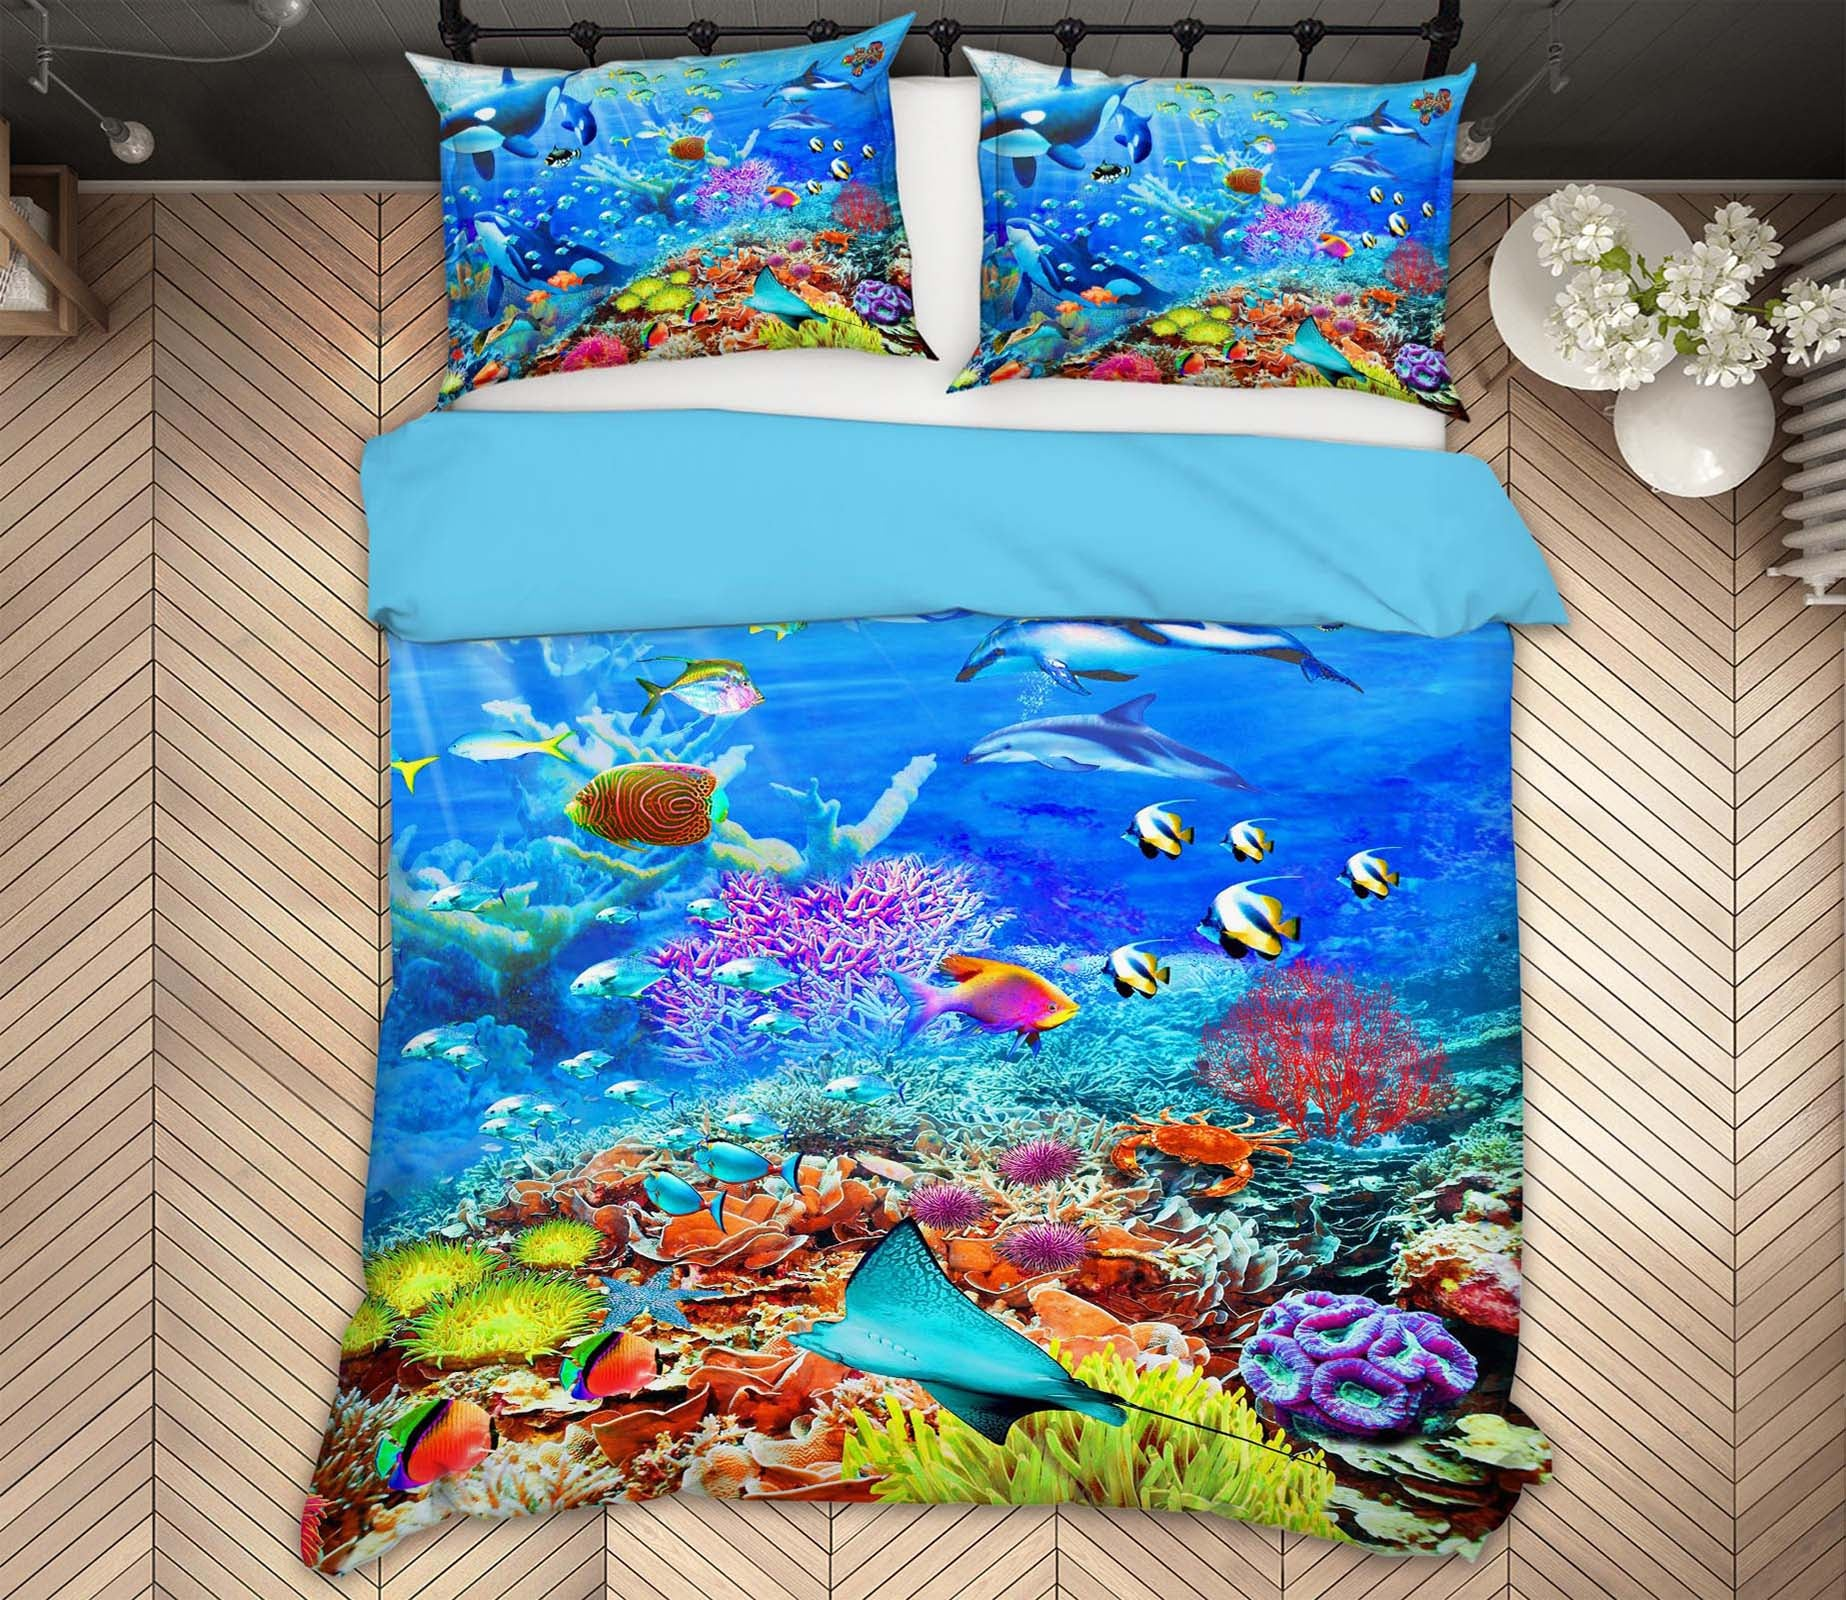 3D Undersea Fish 2034 Adrian Chesterman Bedding Bed Pillowcases Quilt